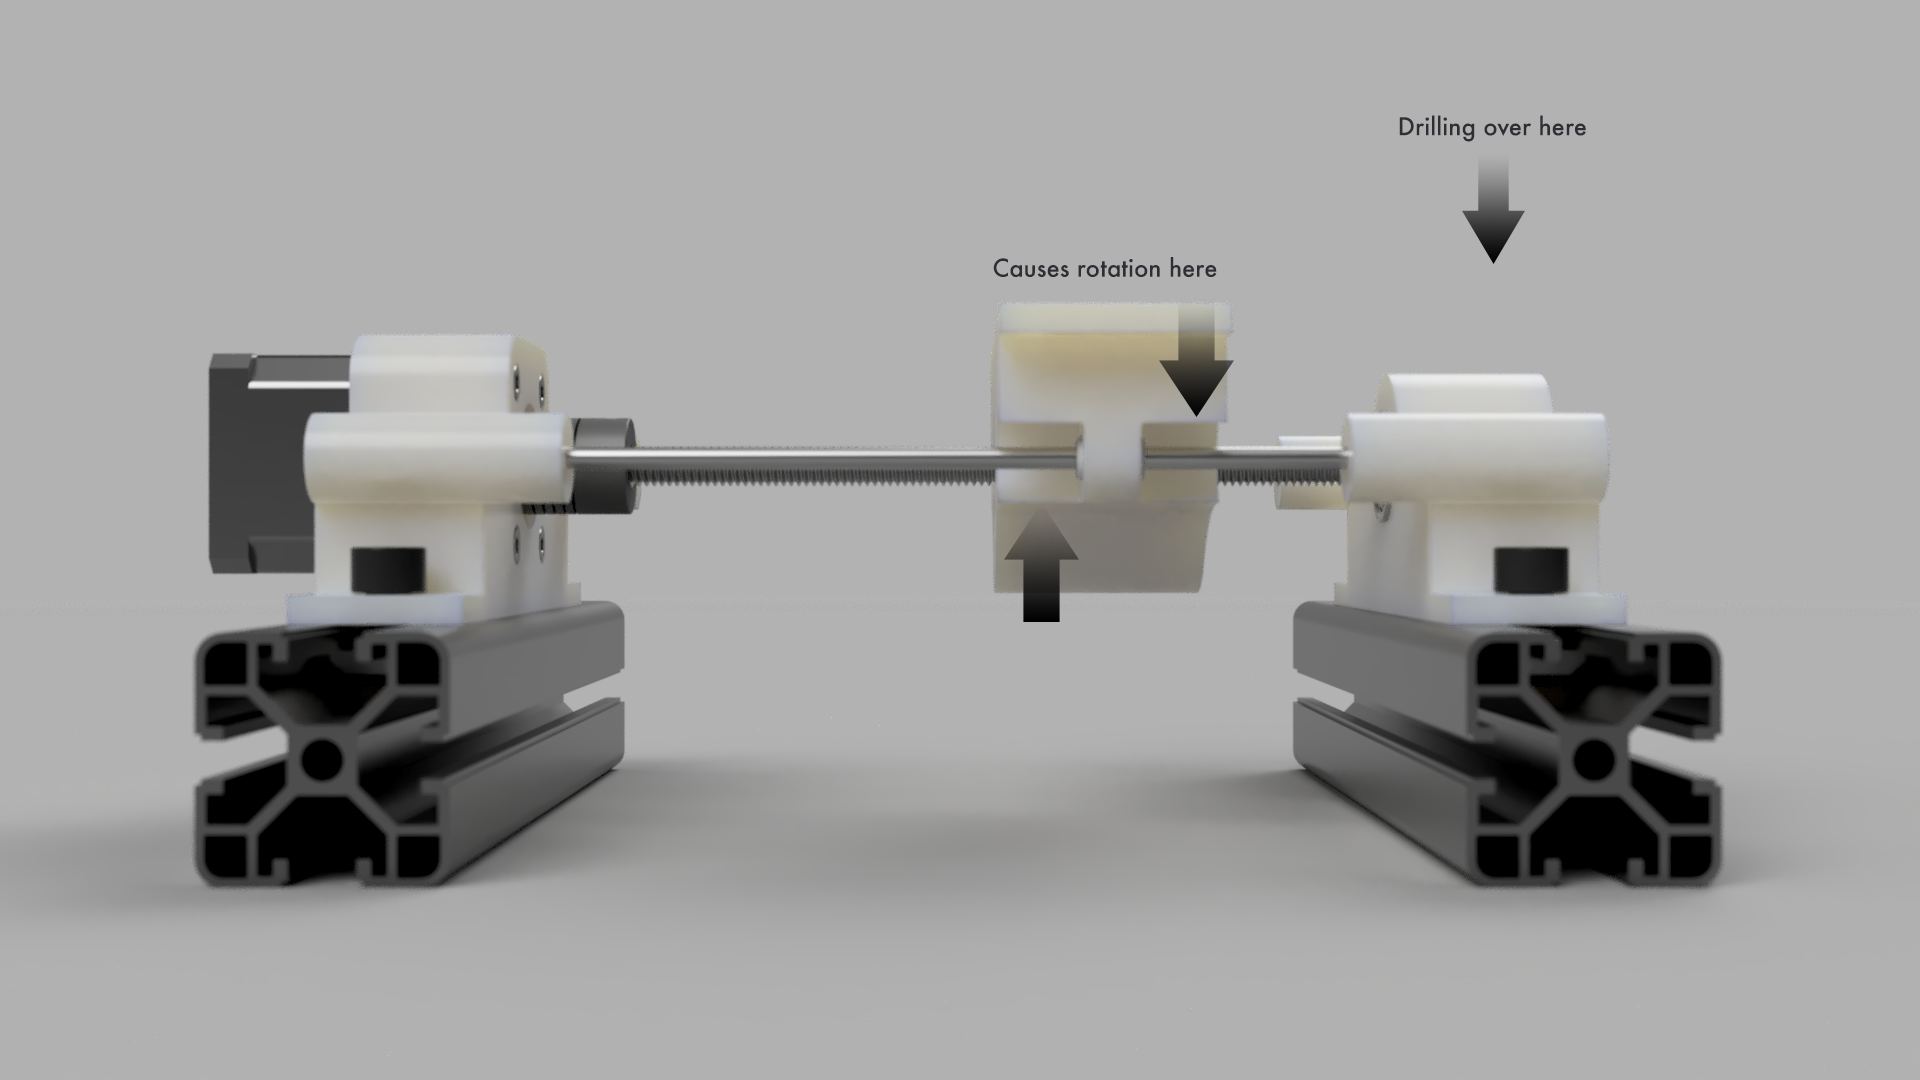 Drilling on one side of the axis, causes excessive rotational forces at the bearing